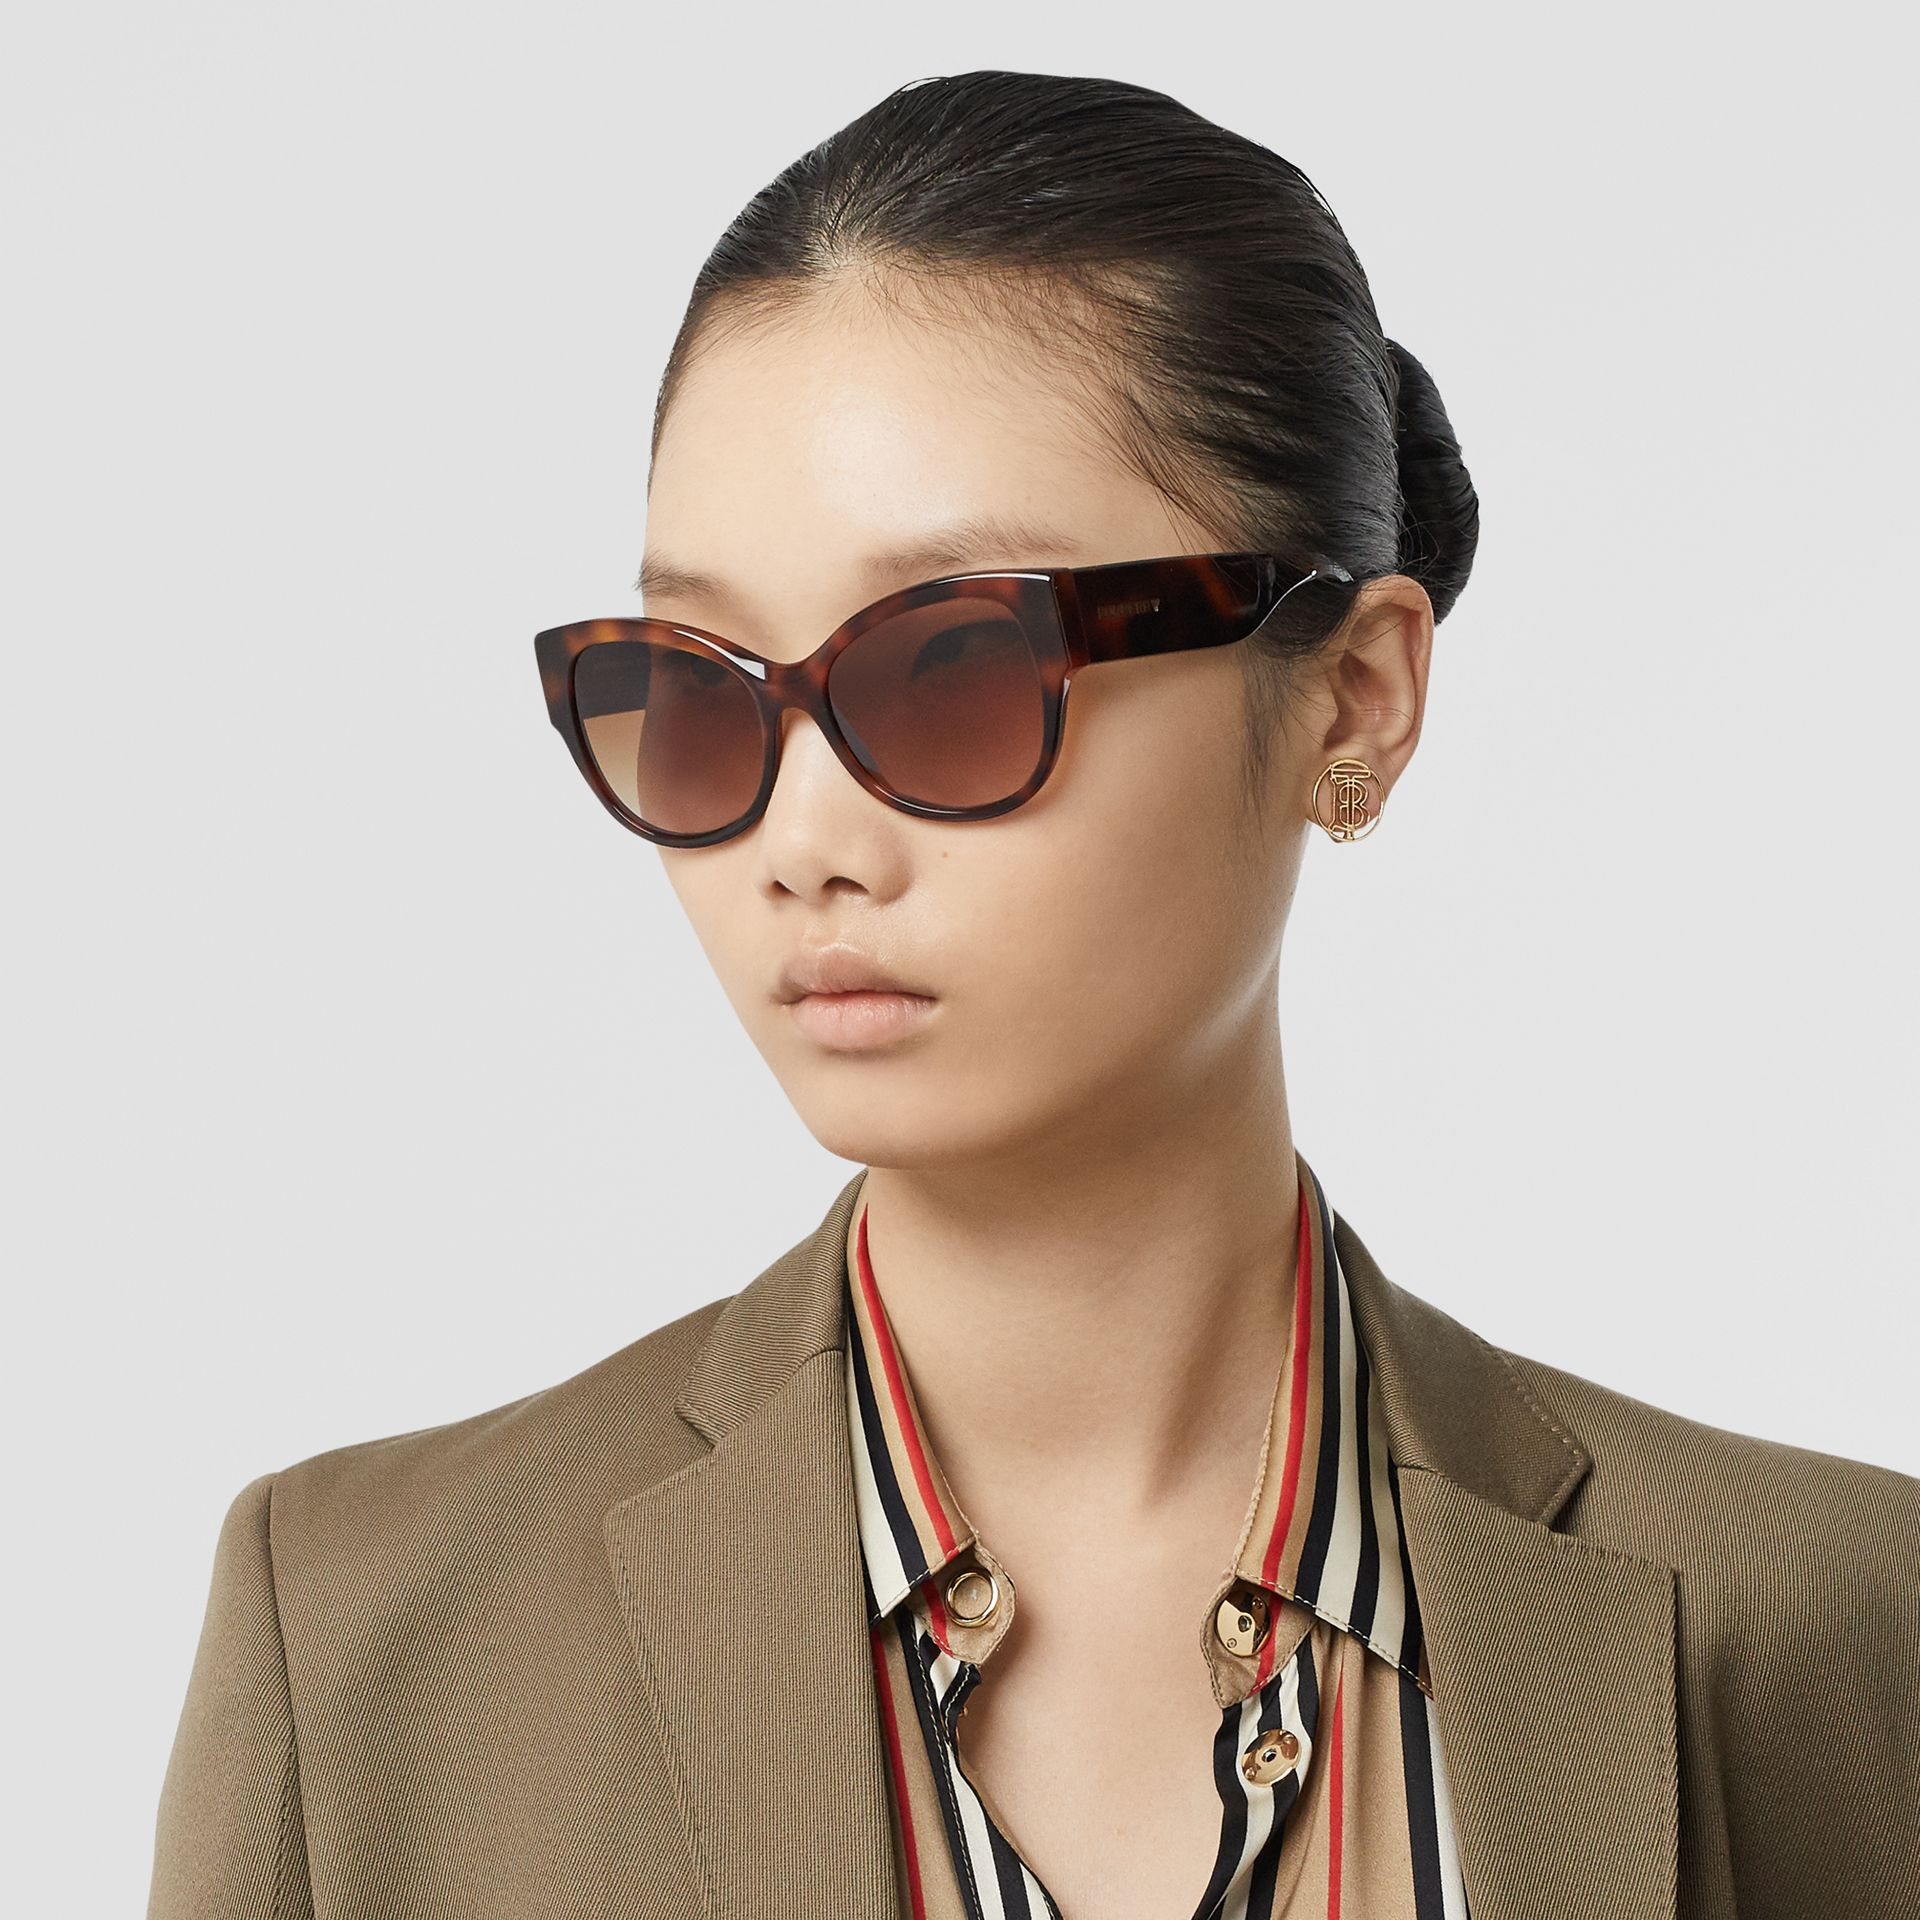 Butterfly Frame Sunglasses in Amber Tortoiseshell - Women | Burberry - gallery image 2